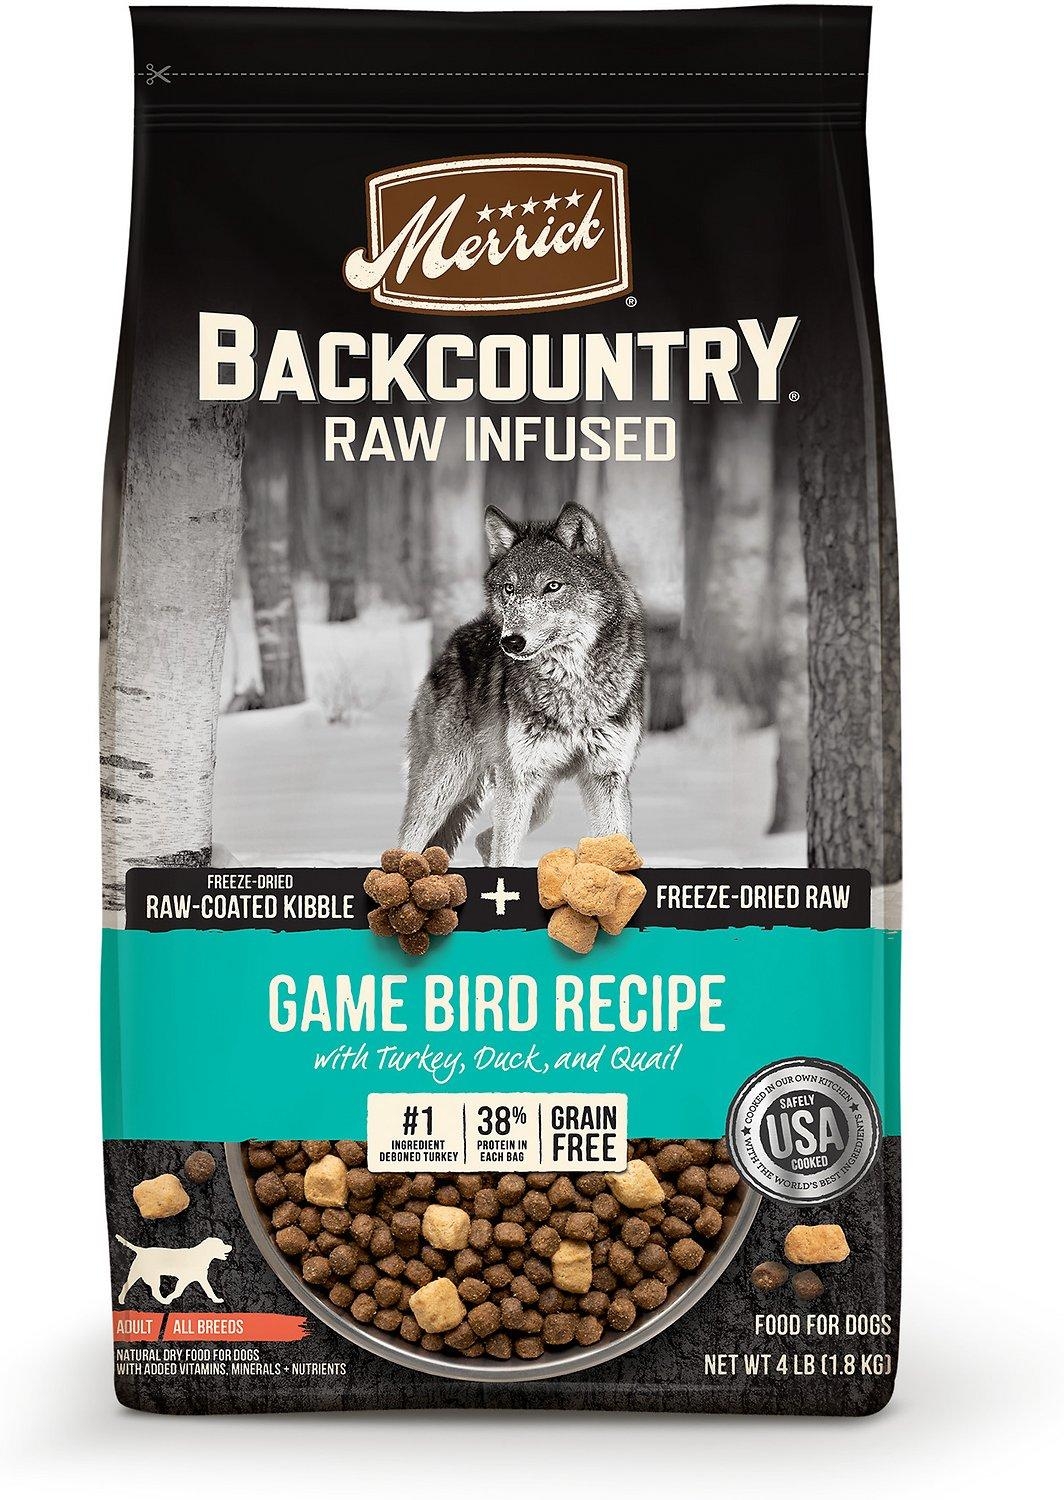 Merrick Backcountry Raw Infused Game Bird Freeze-Dried Dry Dog Food, 10-lb